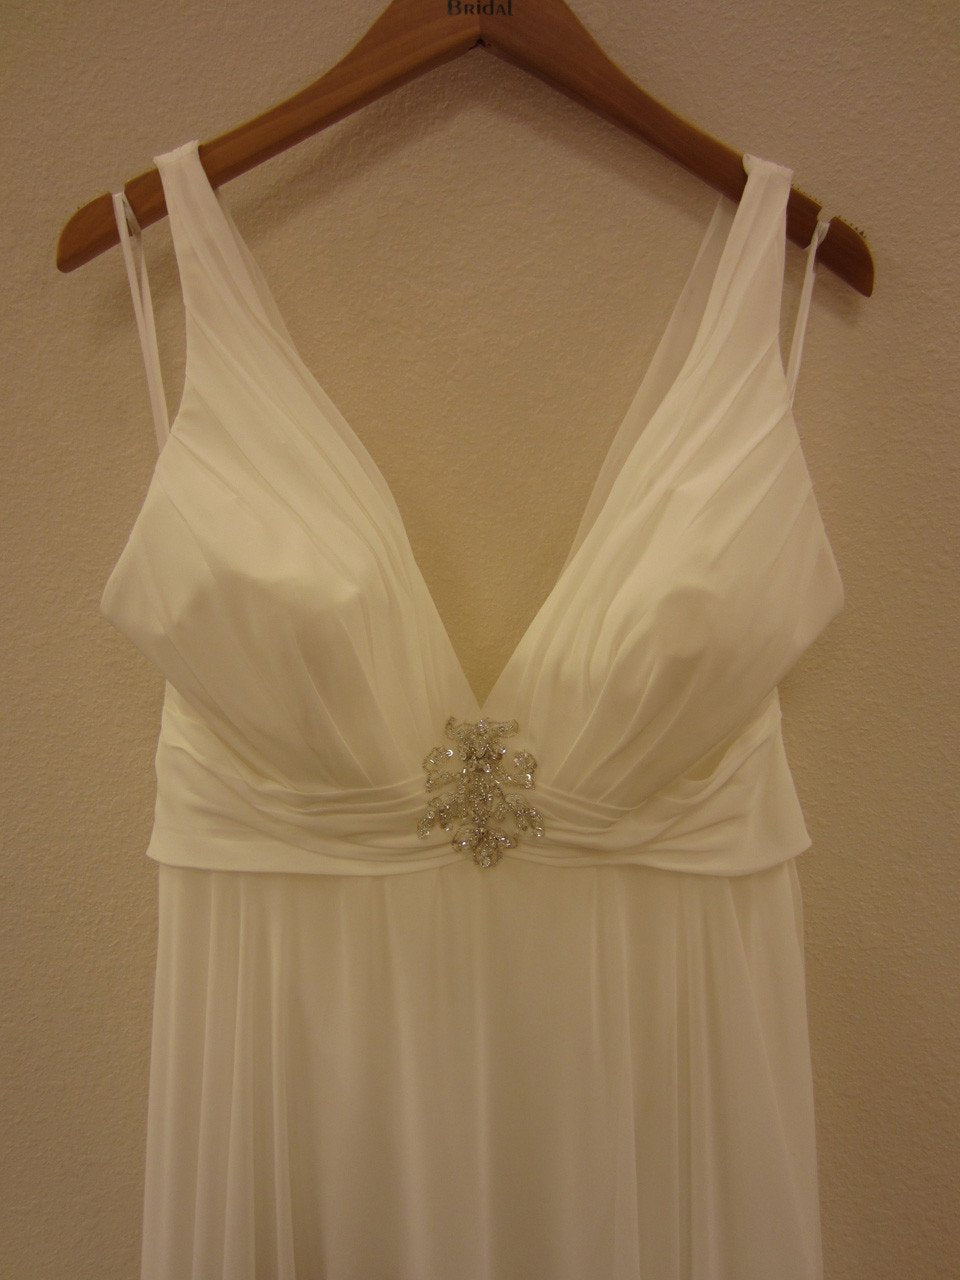 Allure 899 Ivory/Silver size 12 In Stock Wedding Dress - Tom's Bridal